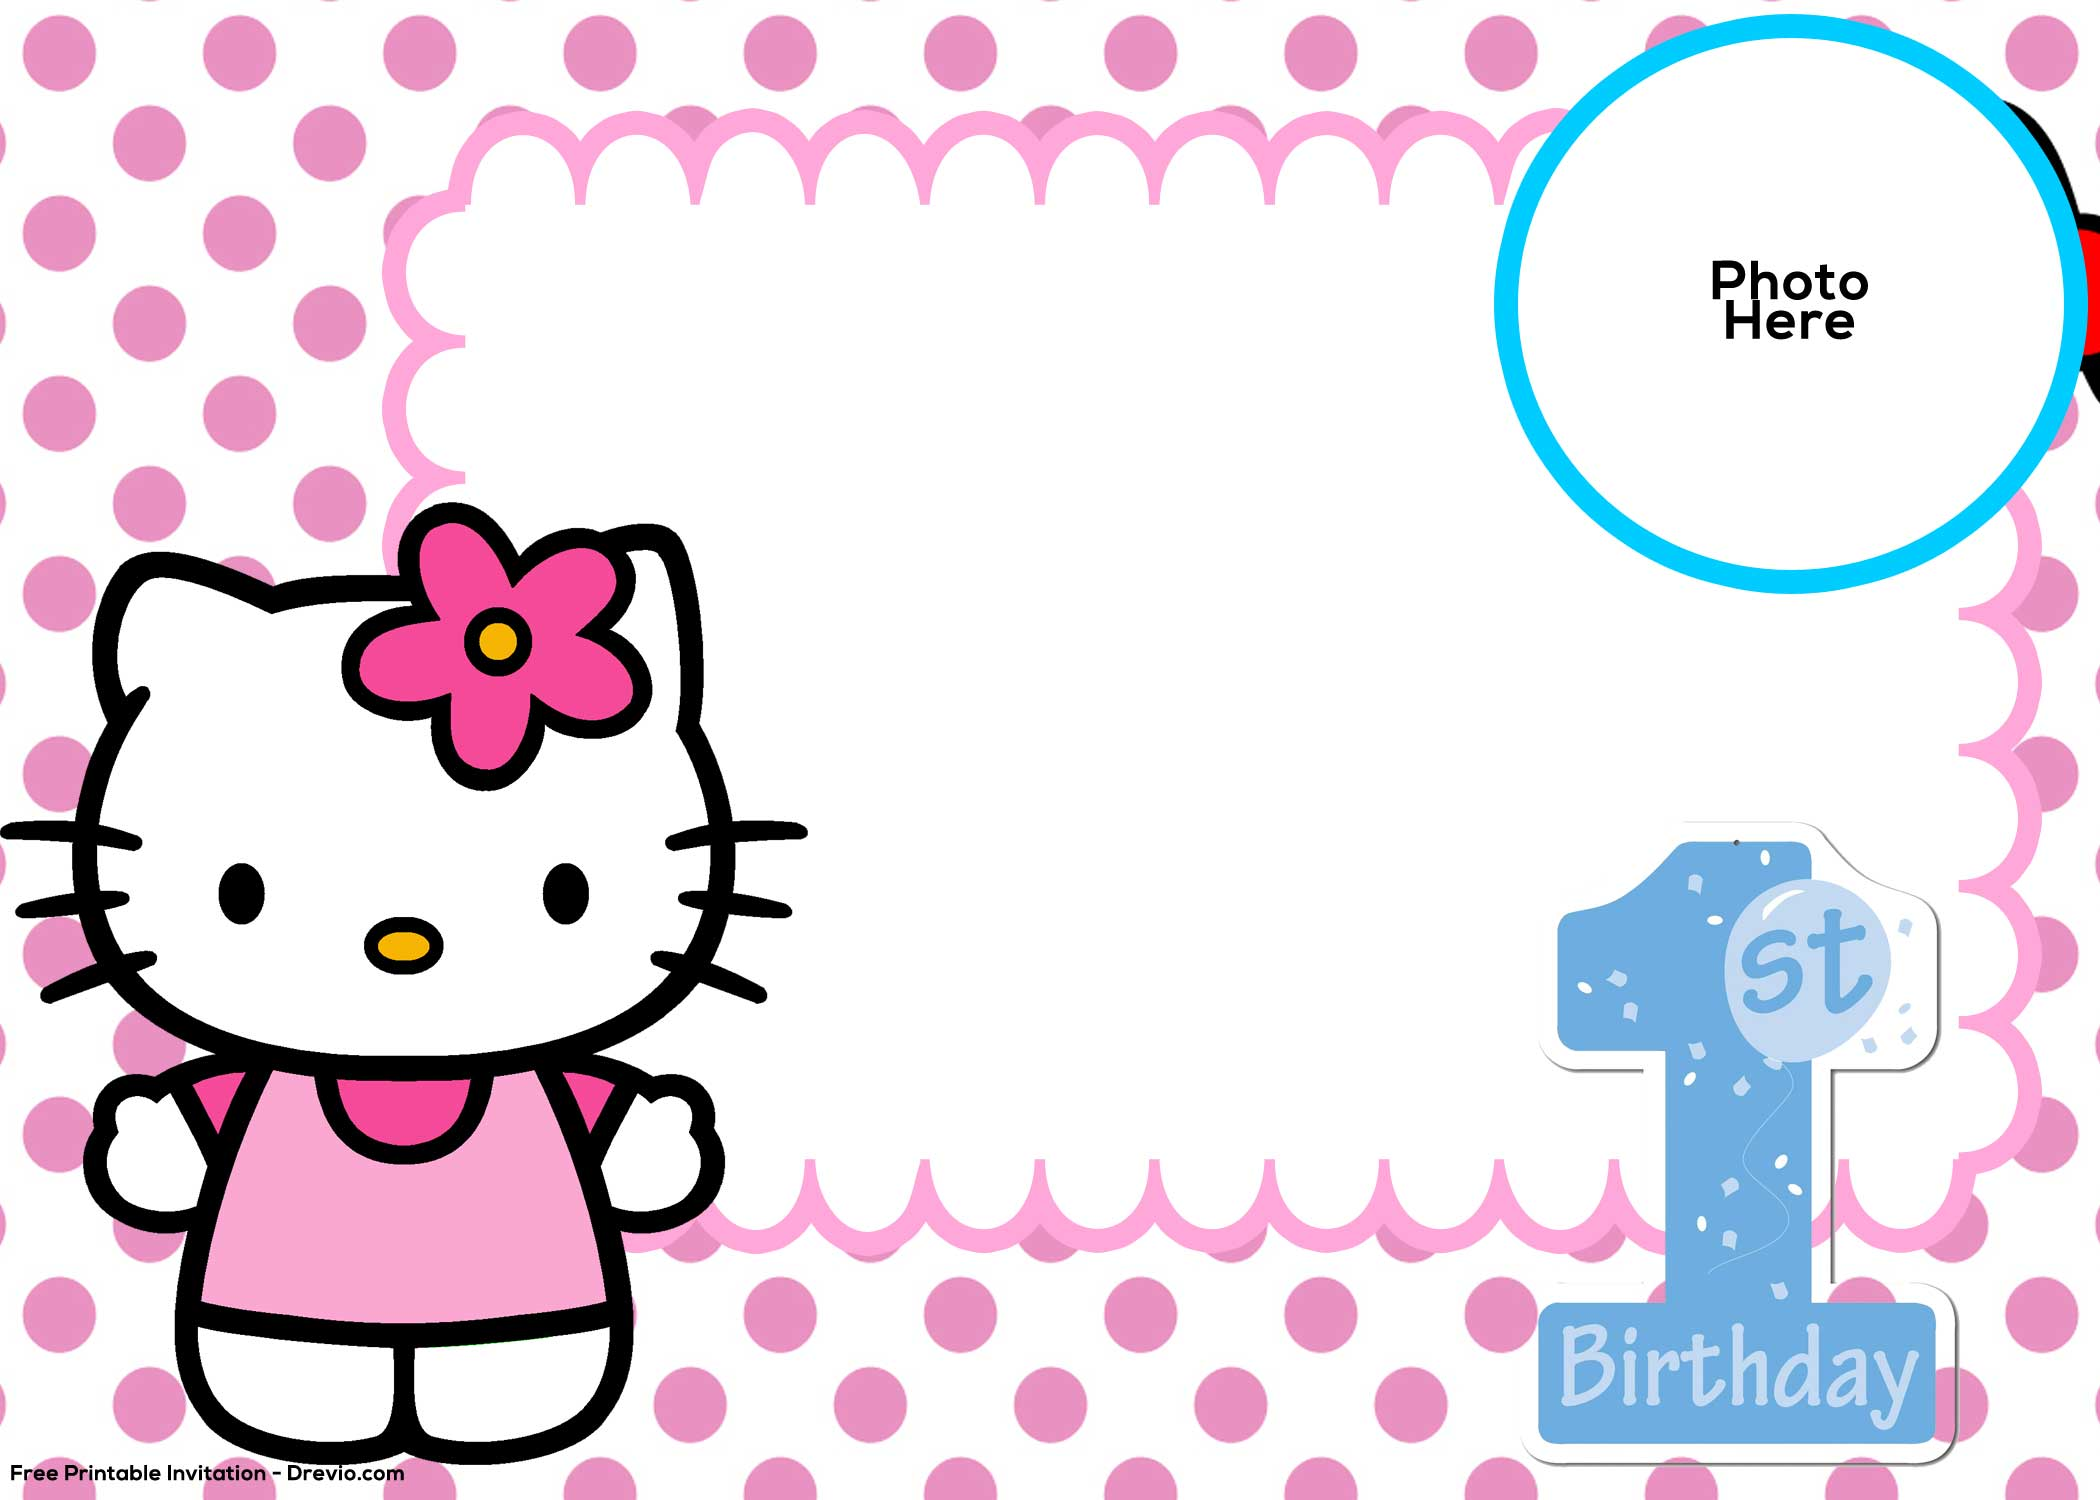 FREE Hello Kitty St Birthday Invitation Template Drevio - Free hello kitty birthday invitation templates